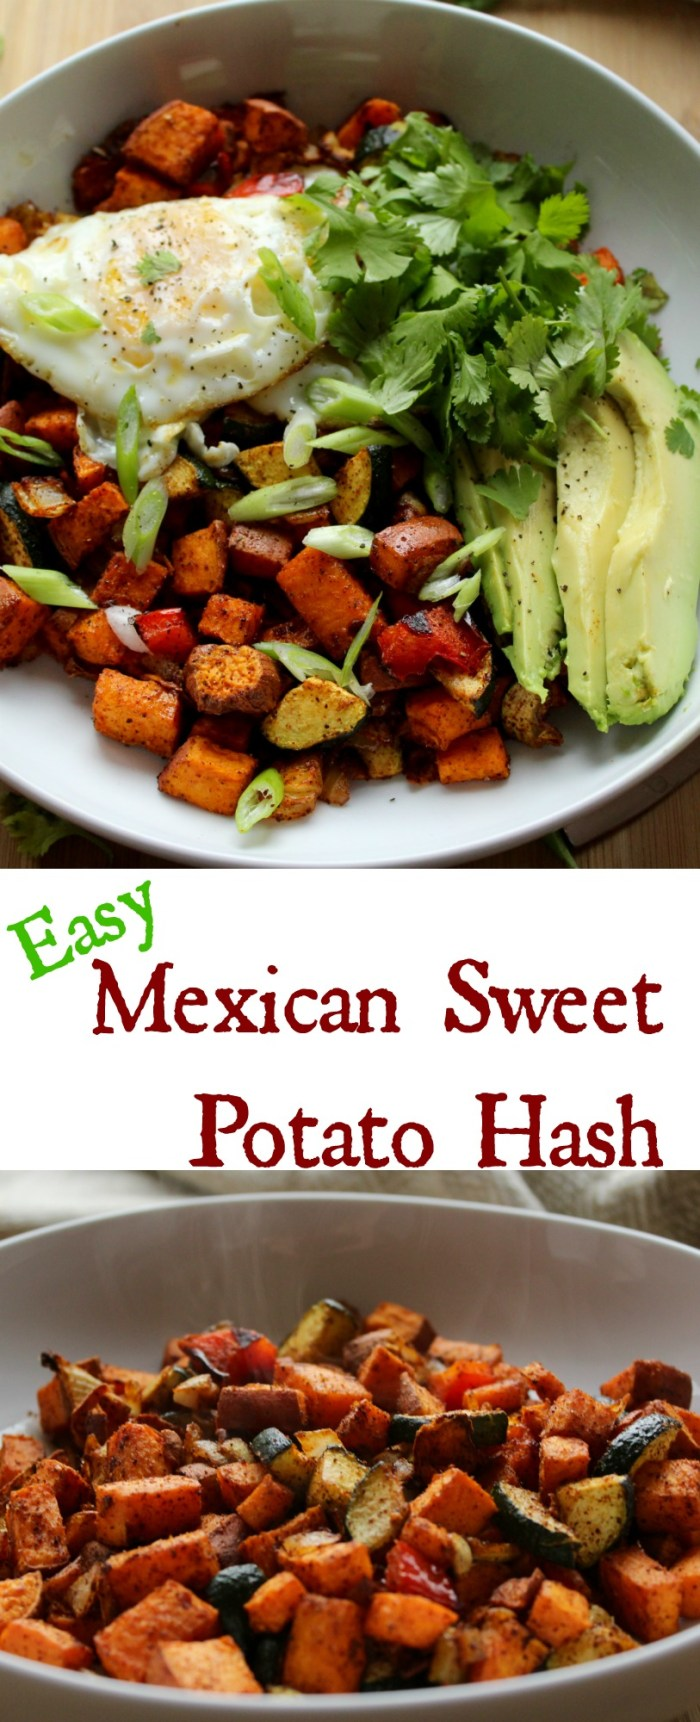 Easy Mexican Sweet Potato Hash. I love brunch!